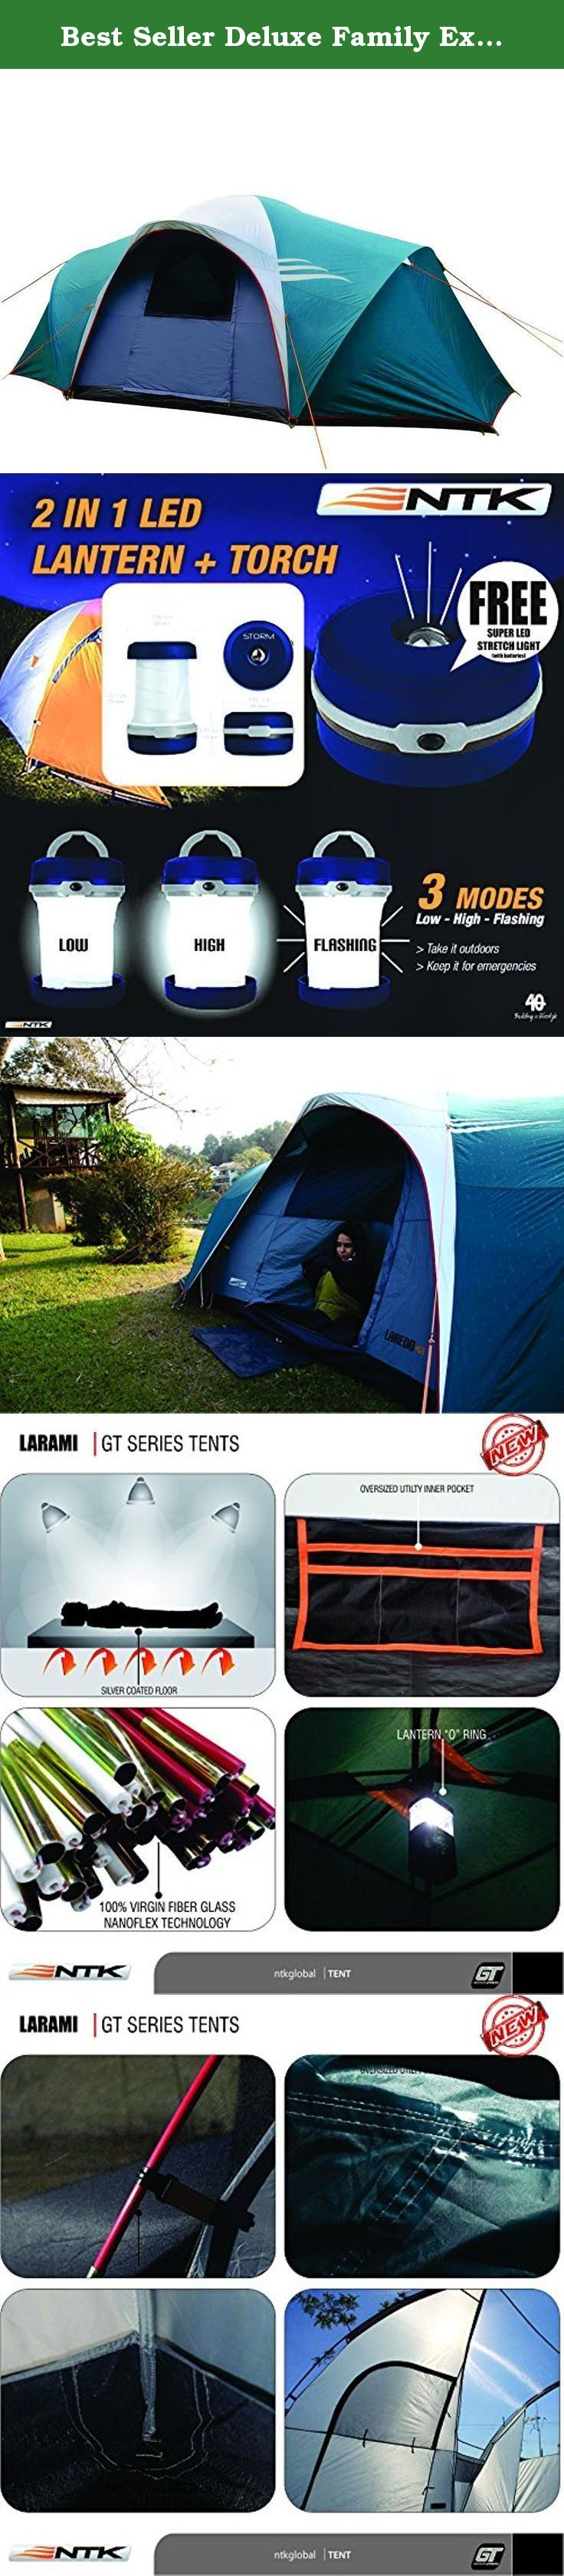 Best Seller Deluxe Family Extra Large Car Hunting 3 Season C&ing tent NTK LARAMI GT up & Best Seller Deluxe Family Extra Large Car Hunting 3 Season Camping ...